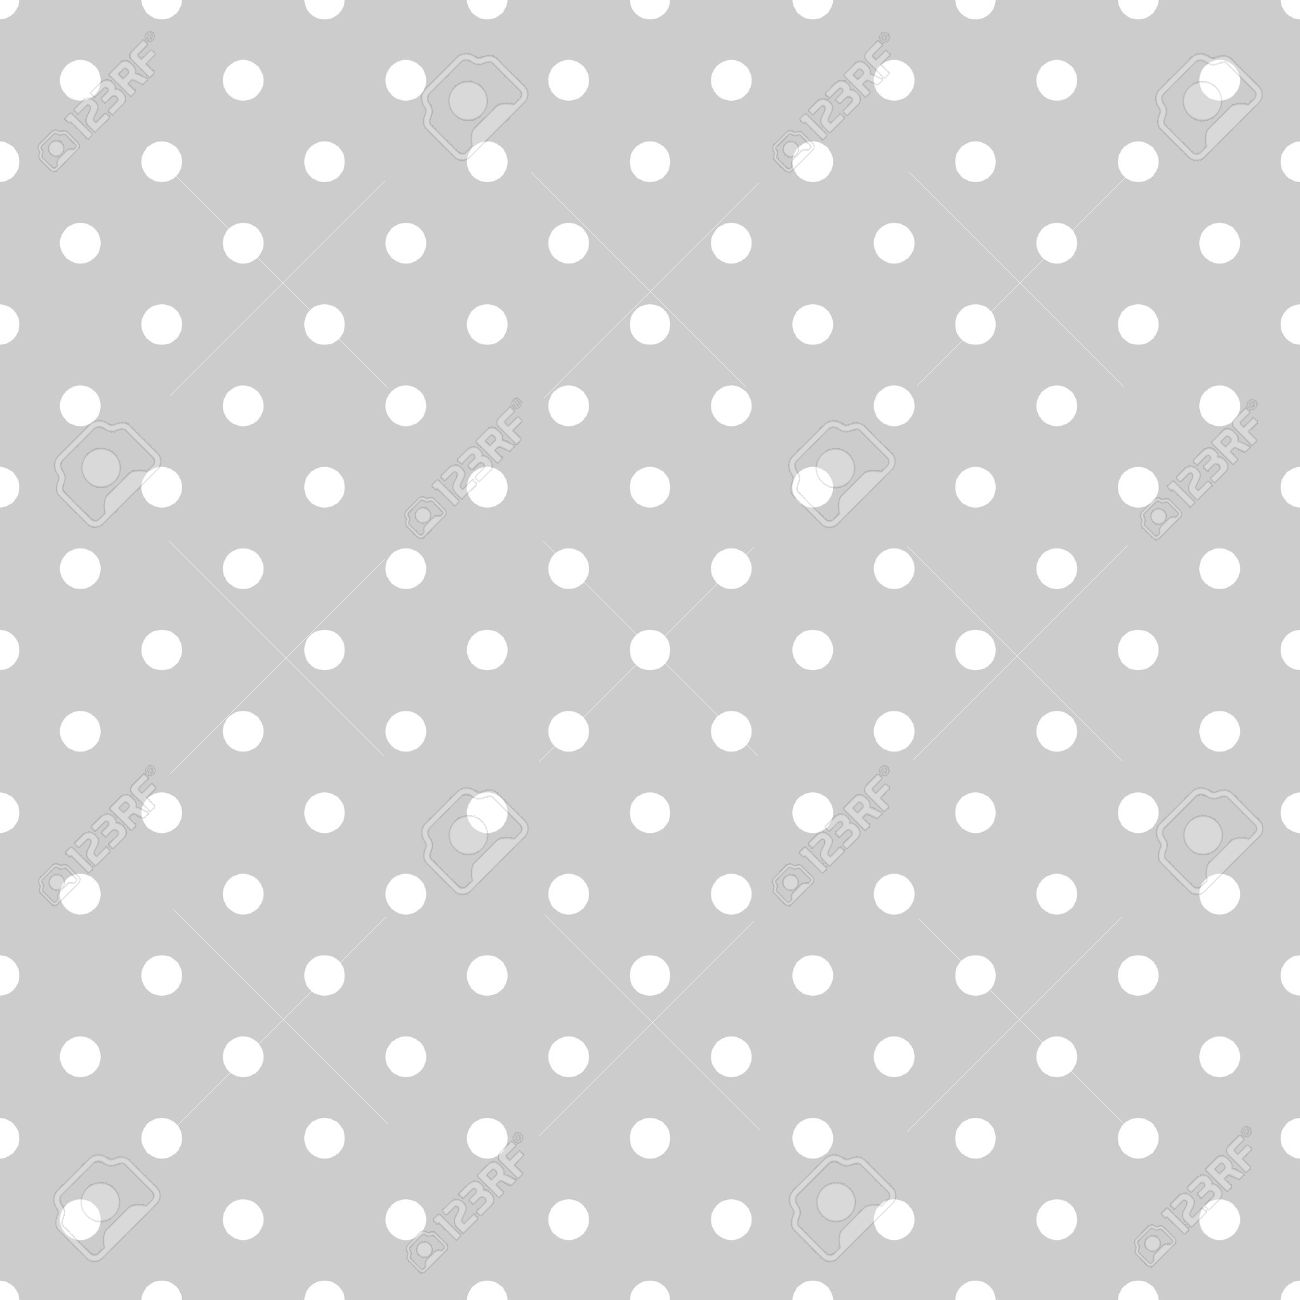 Seamless white and grey pattern or tile background with small polka dots for desktop wallpaper